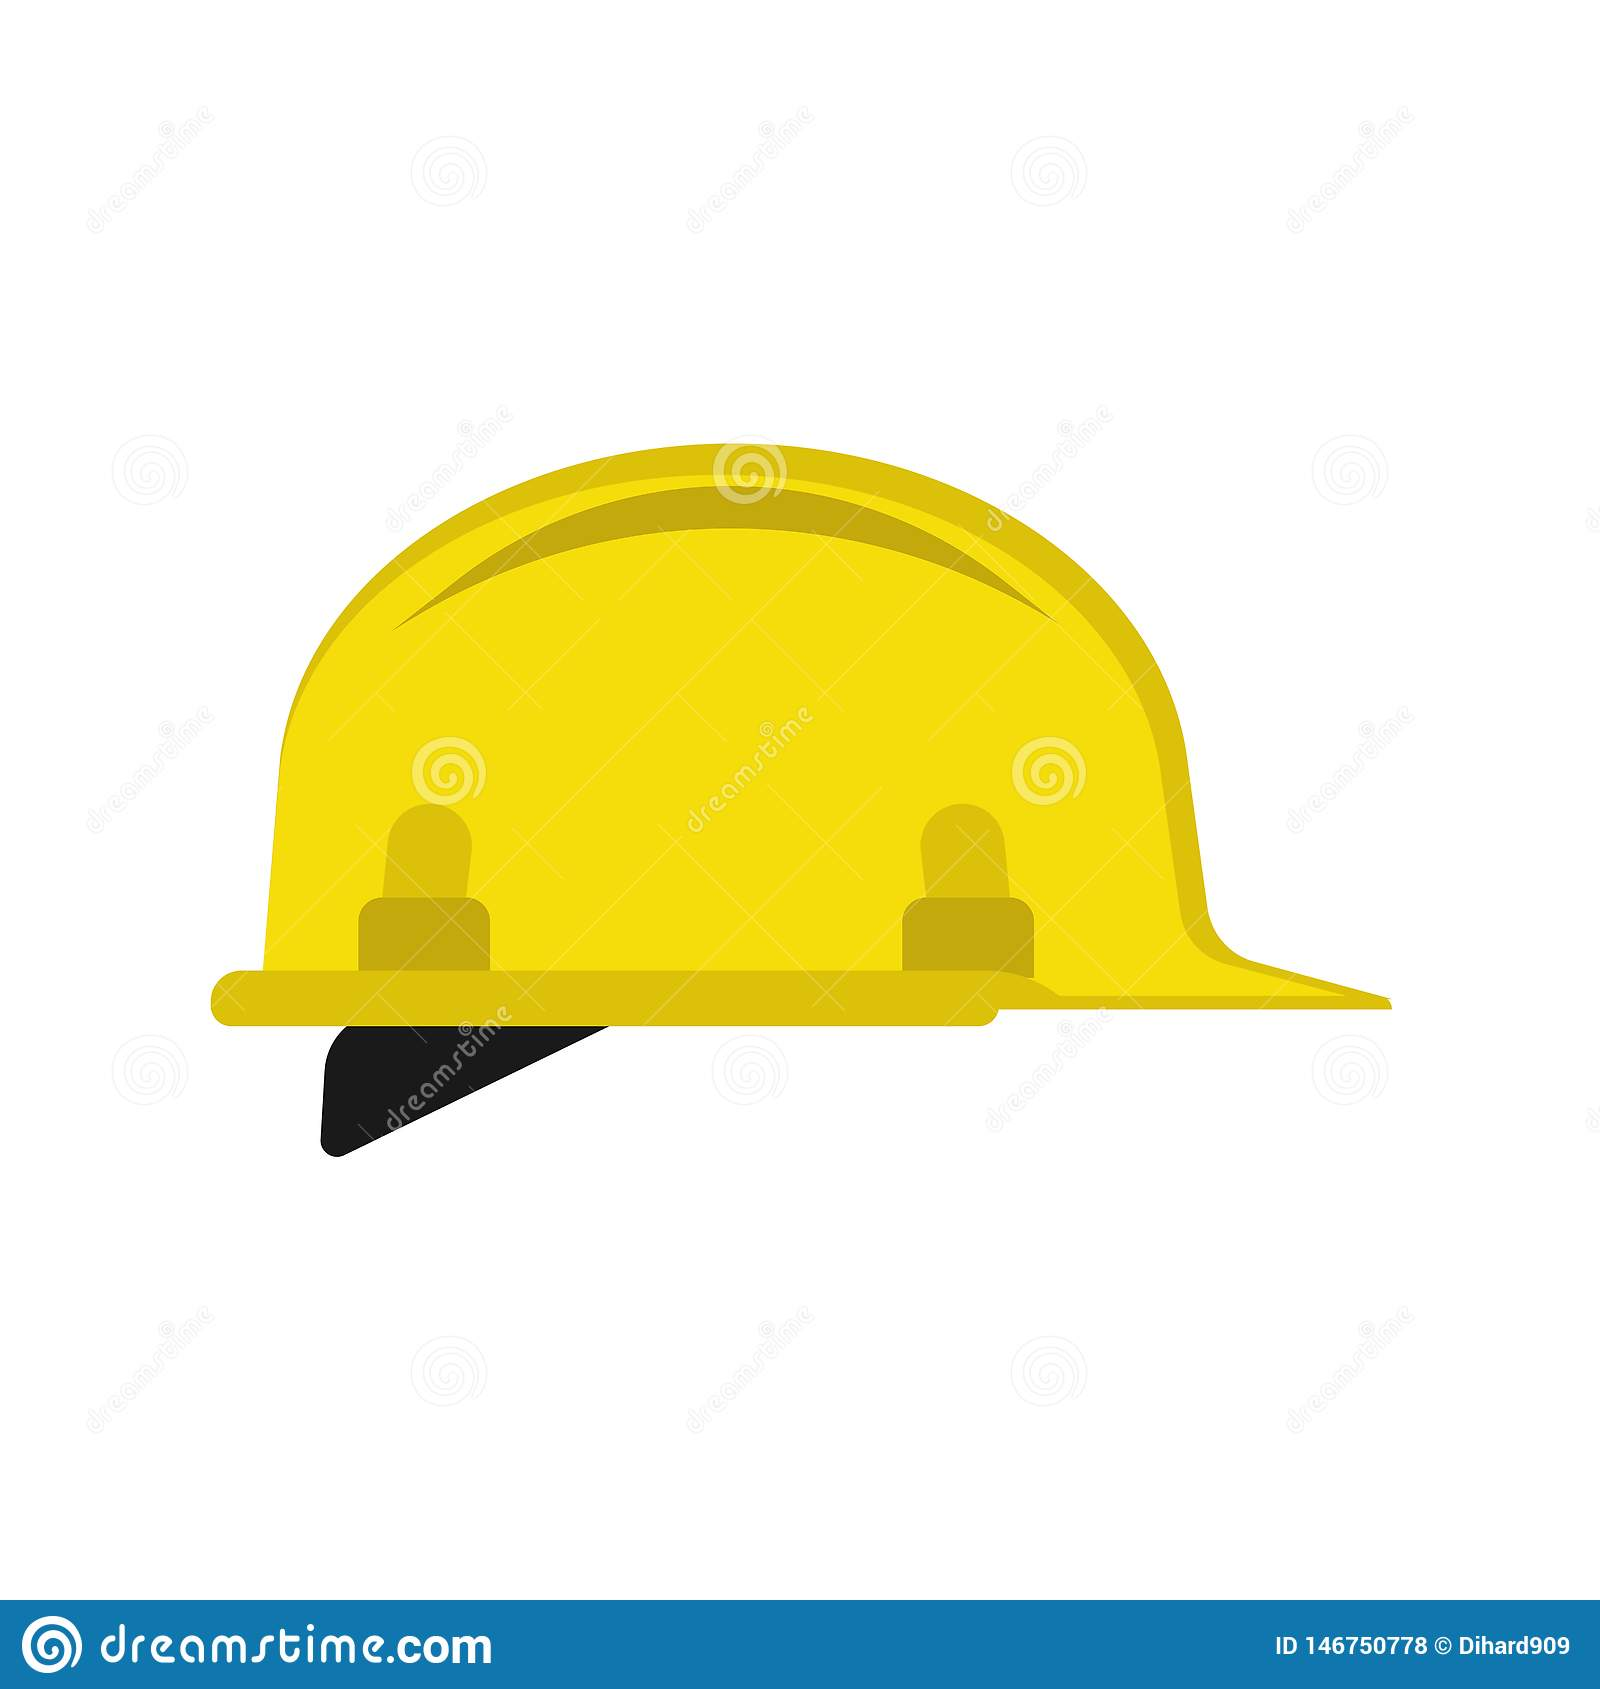 Hard hat flat unifrom engineering construction repair vector icon. Yellow safety cap equipment symbol plastic tool